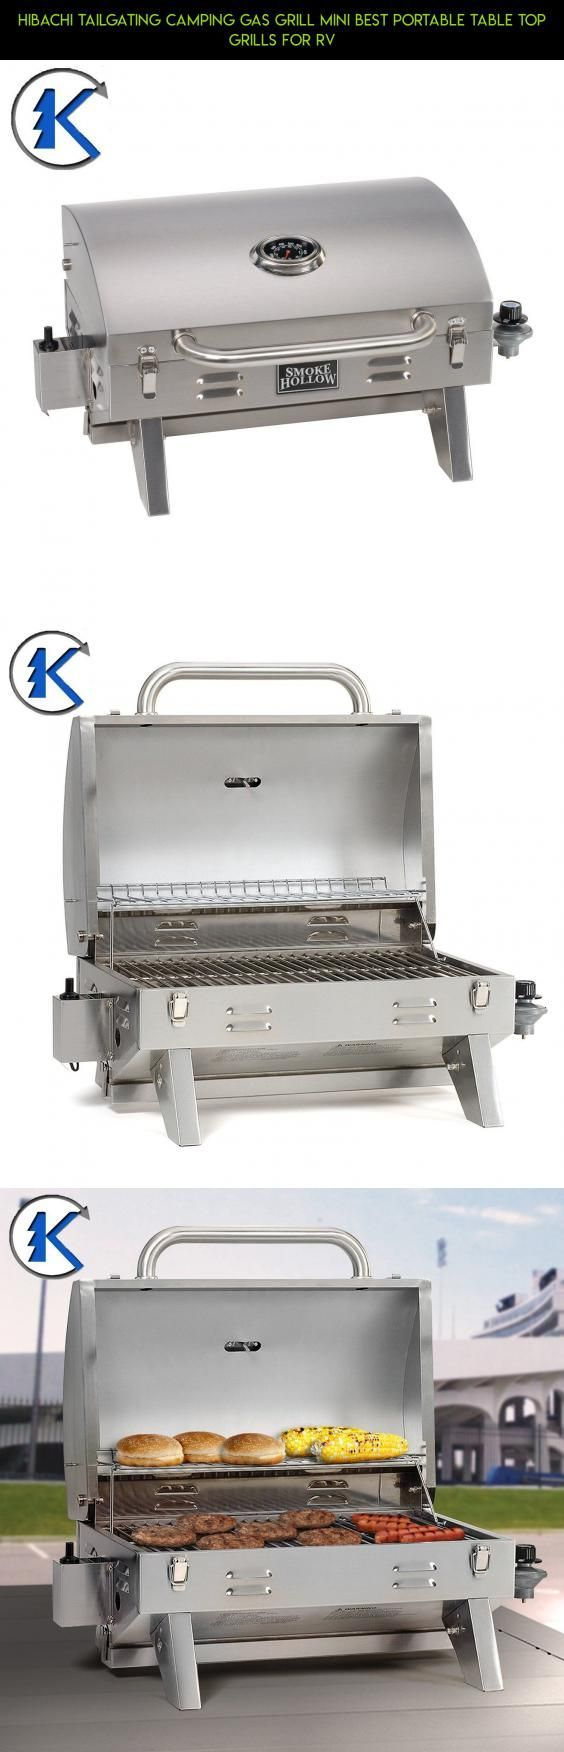 Hibachi Tailgating Camping Gas Grill Mini Best Portable Table Top Grills for RV #technology #camera #grills #drone #plans #kit #shopping #tech #hibachi #parts #fpv #gadgets #racing #products http://grillsidea.com/best-gas-grills/